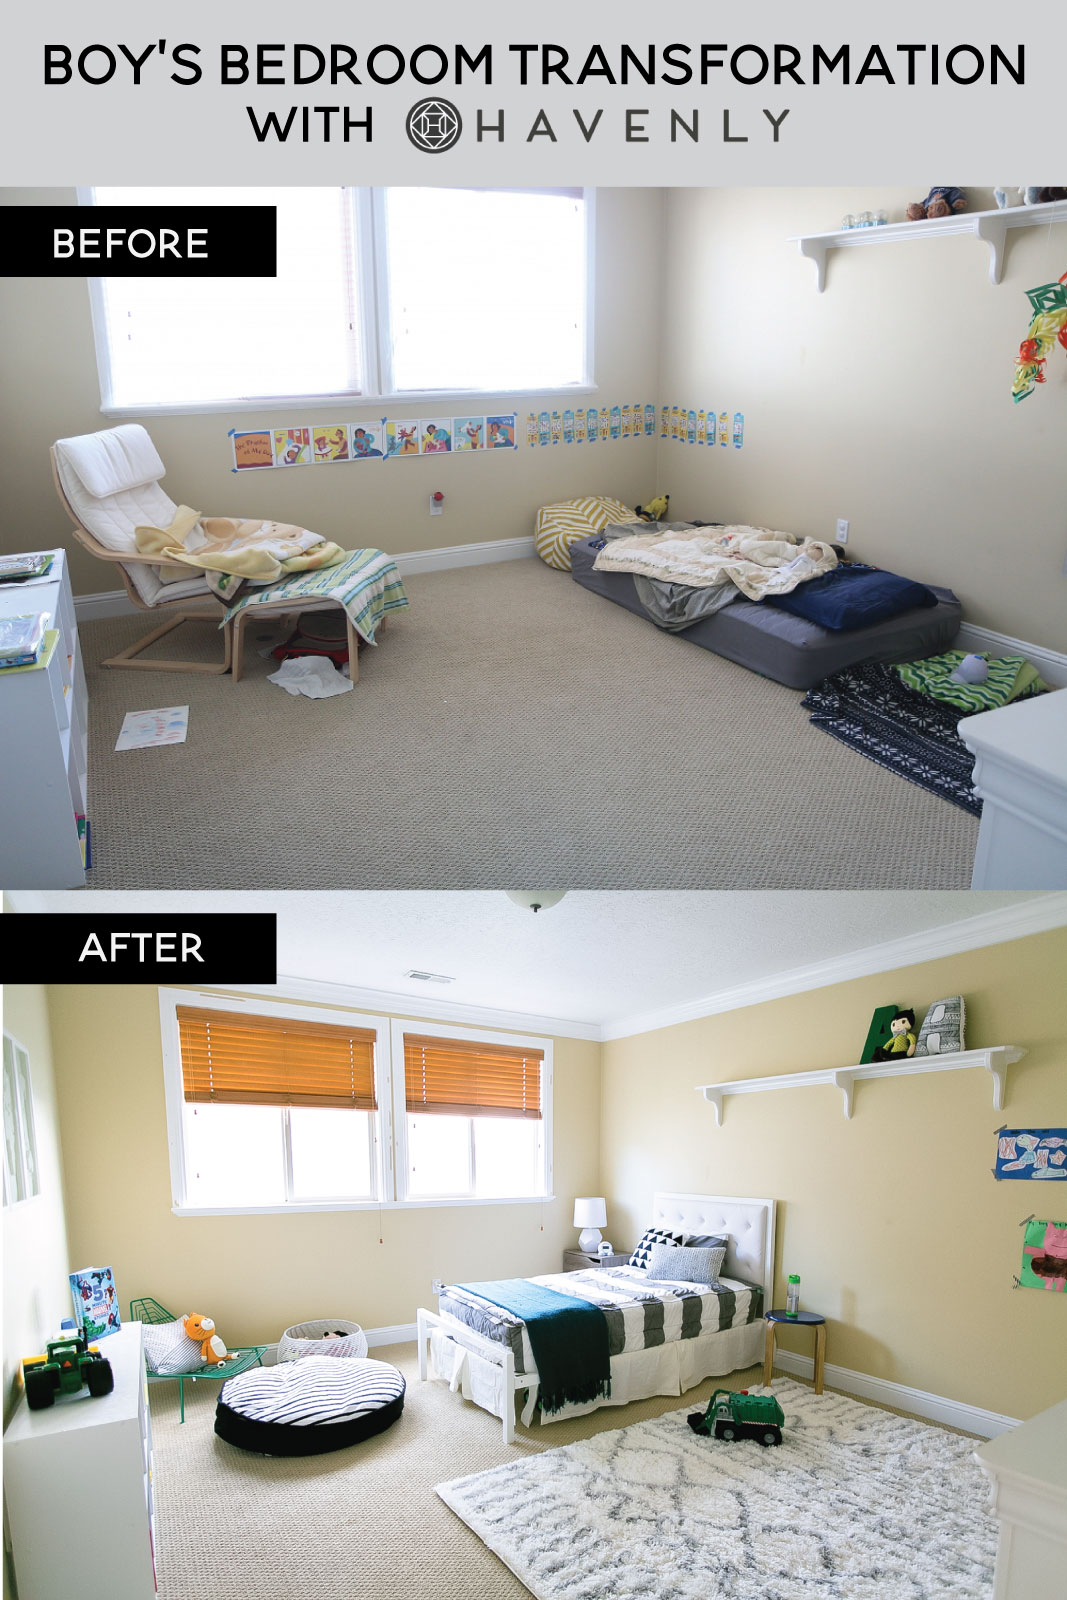 Boys-Bedroom-Transformation-with-Havenly